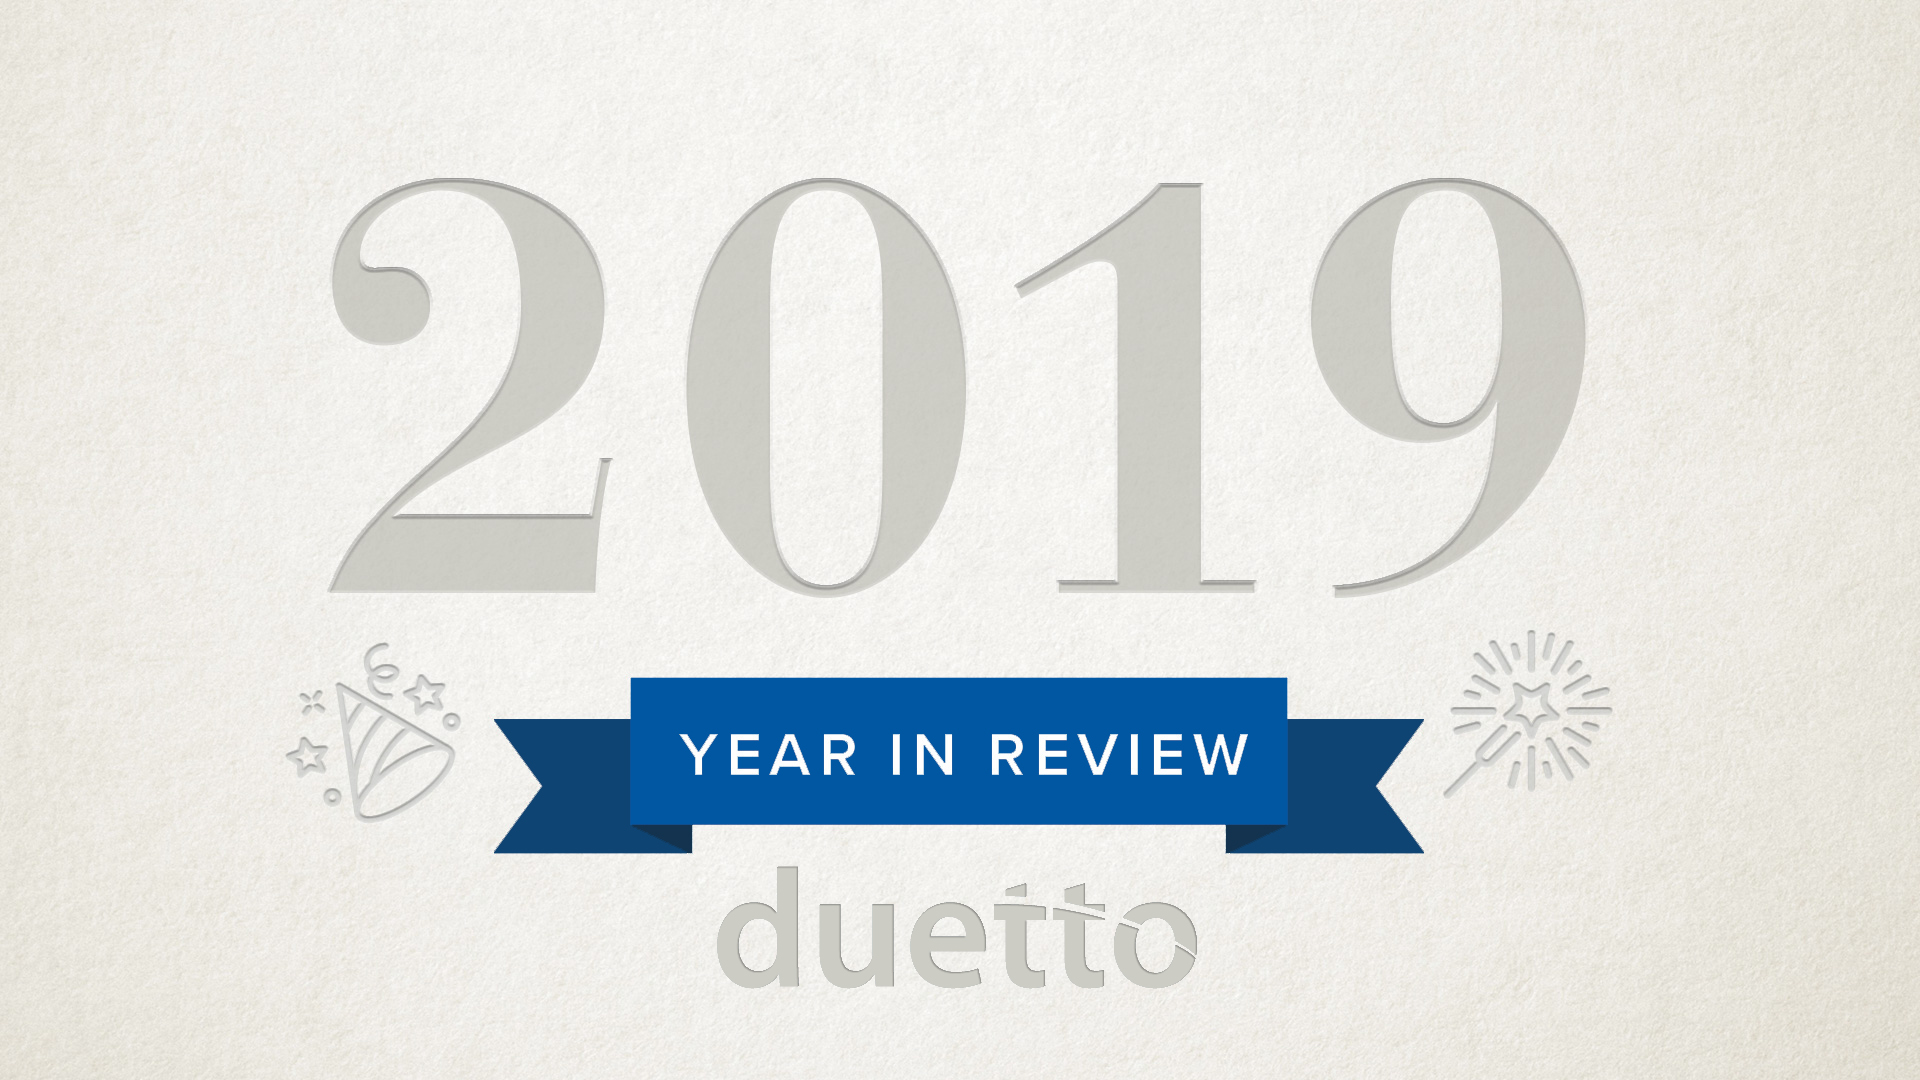 yearinreview-duetto